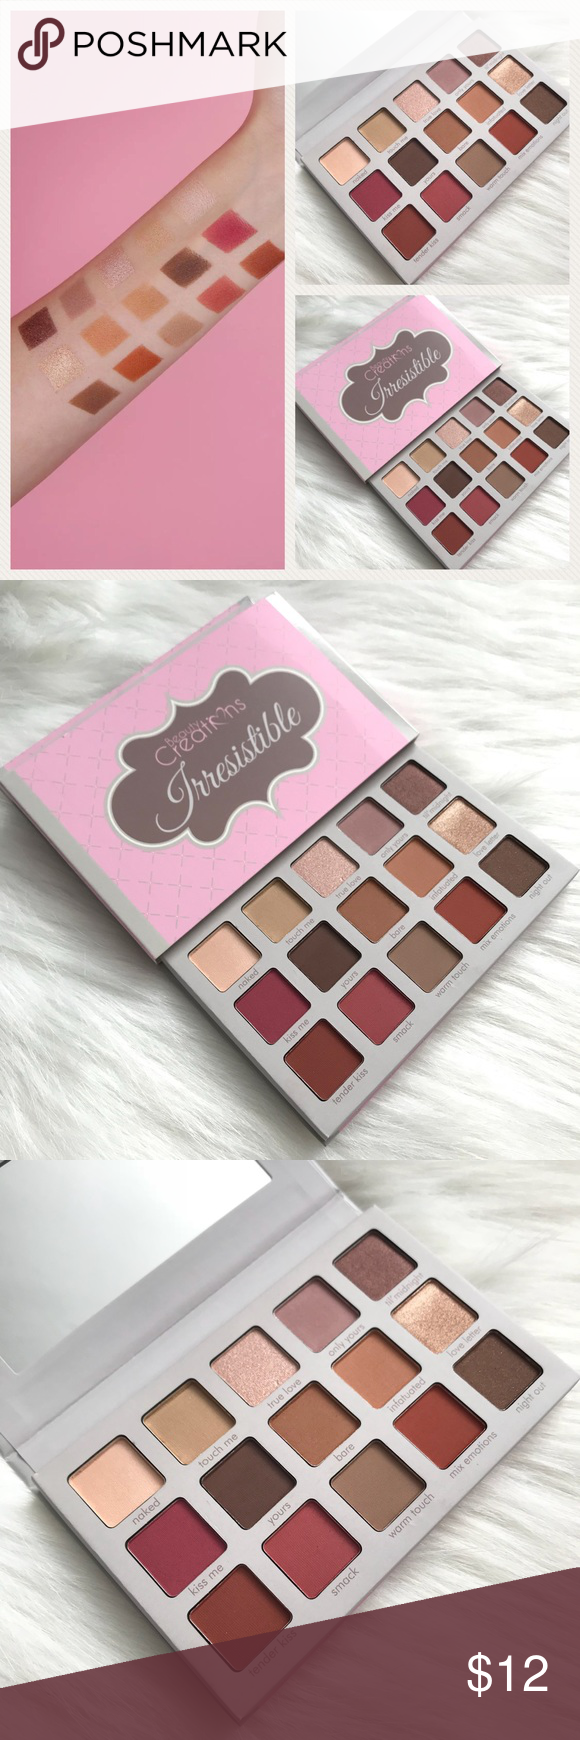 Beauty Creations Irresistible Eyeshadow Palette Brand New